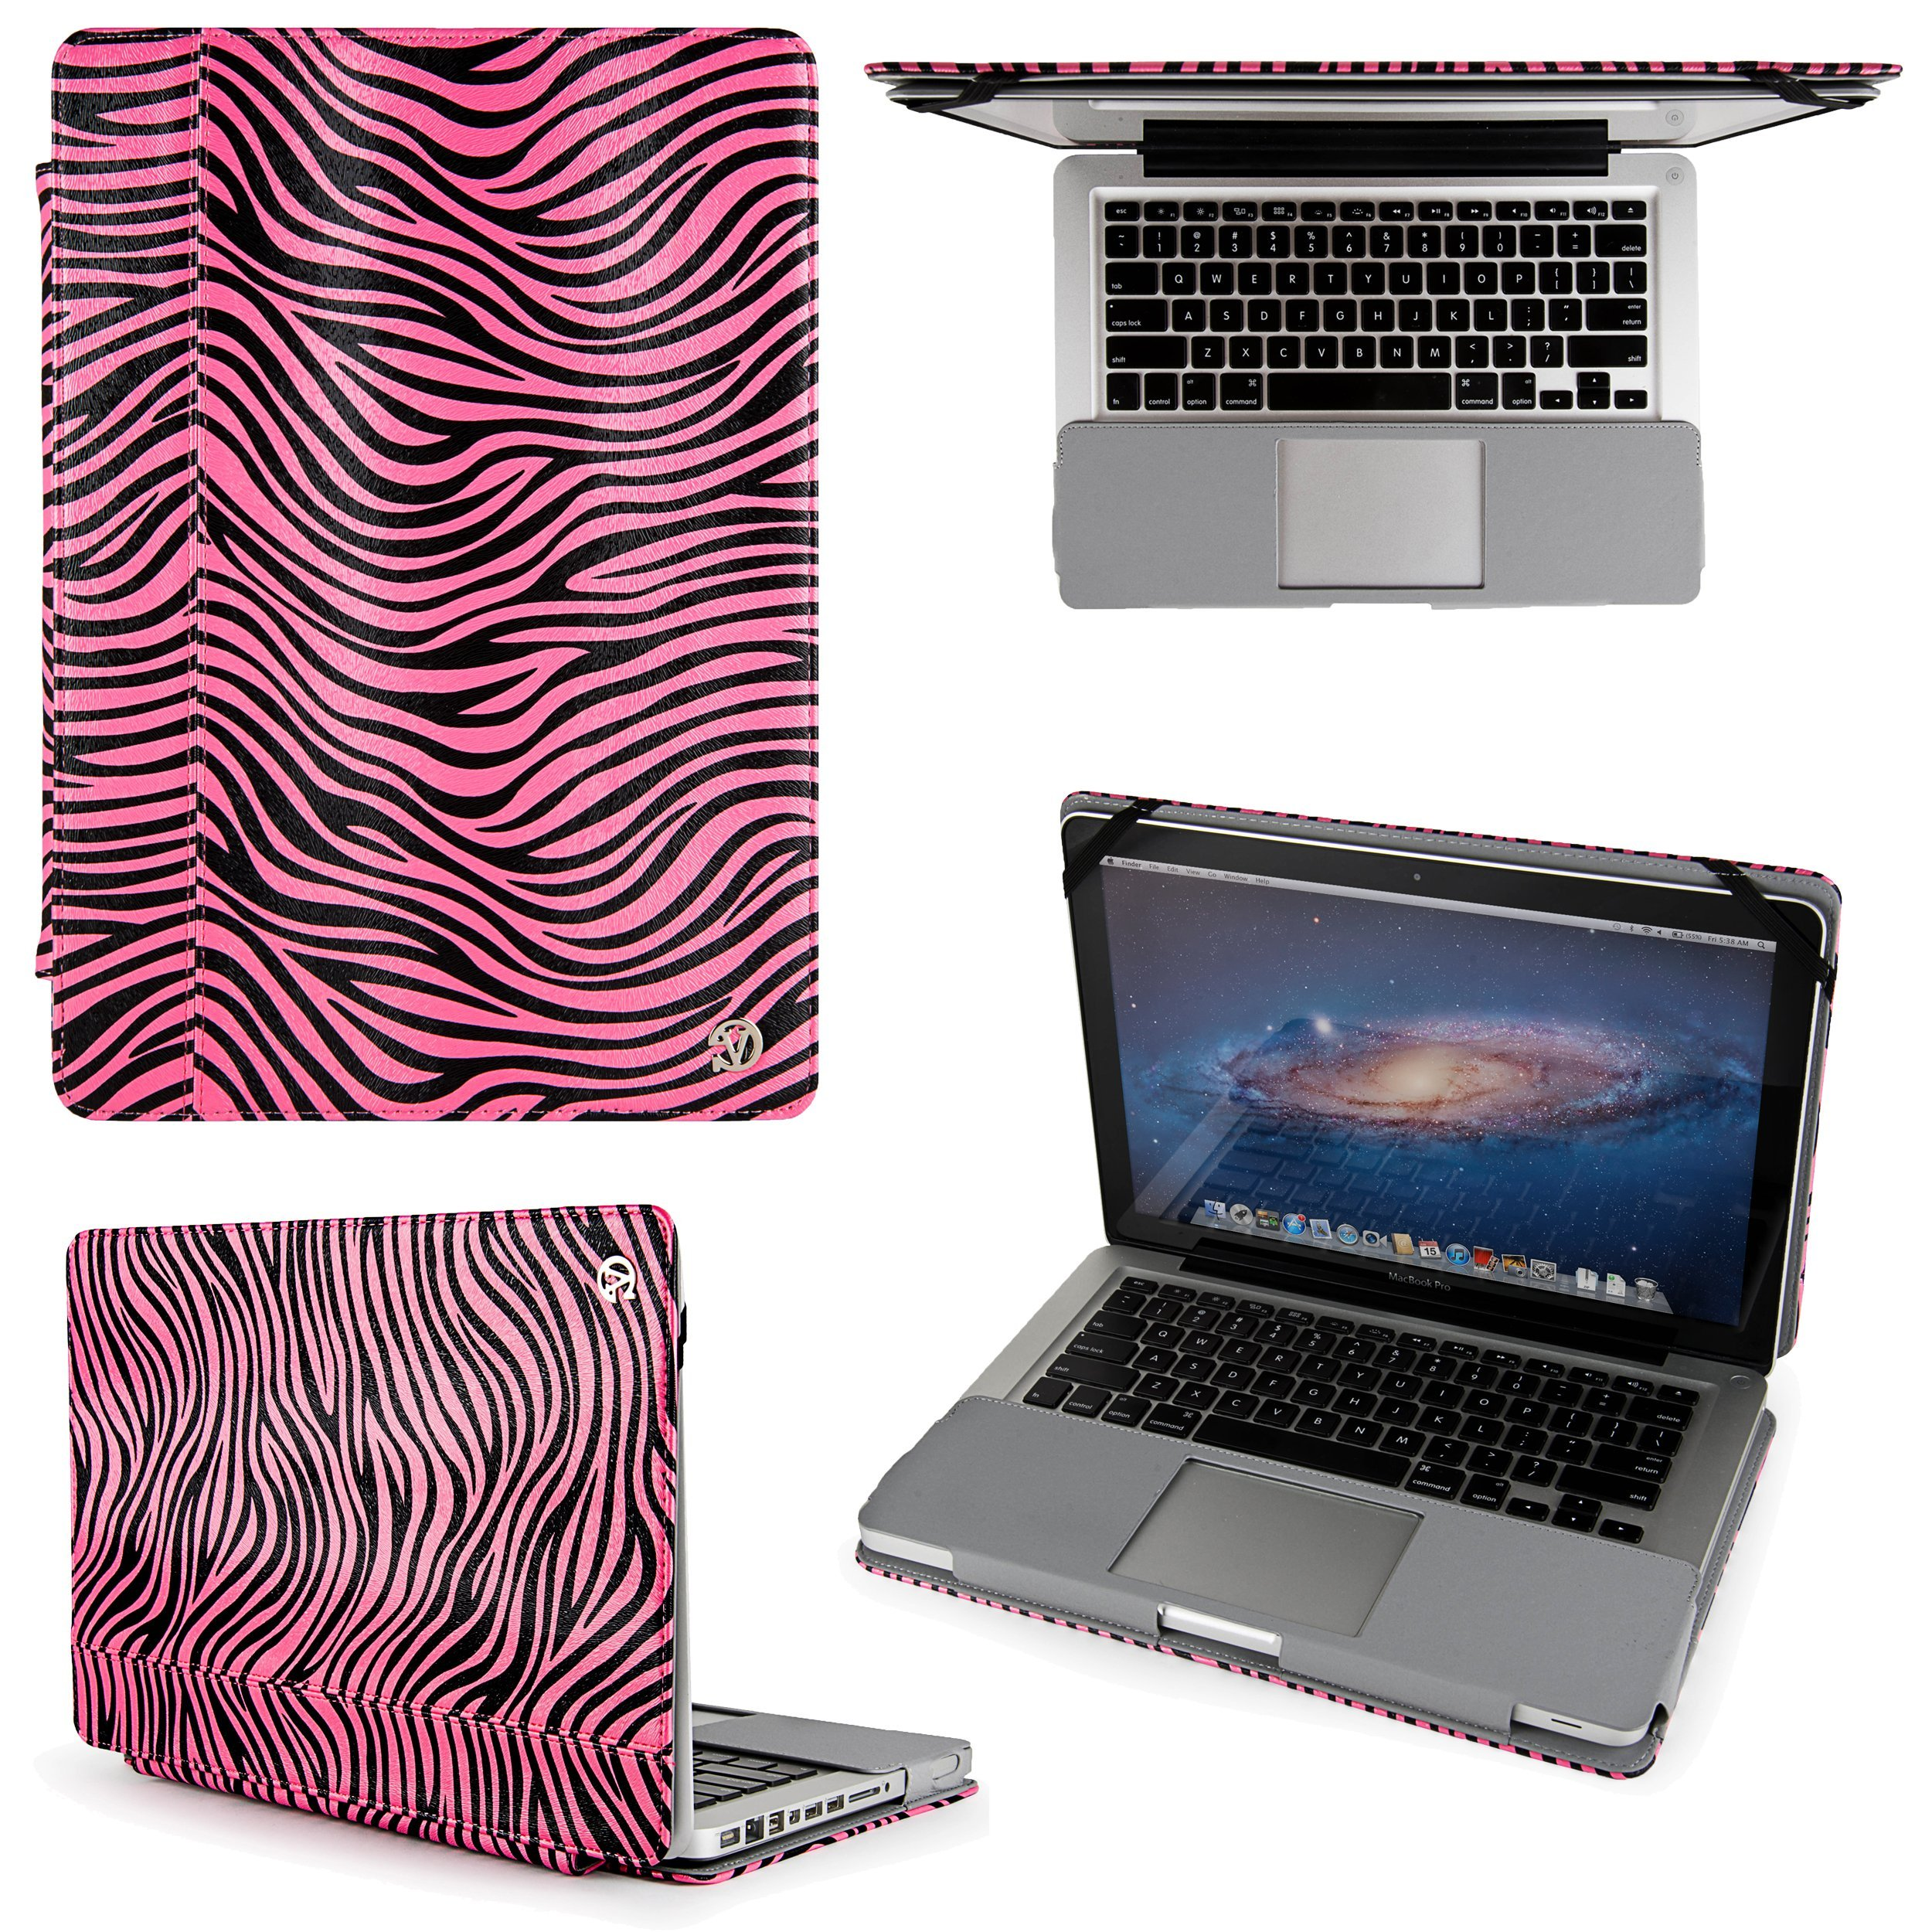 Faux Leather Book Style Folio Protective Cover for Apple Macbook Pro 13.3-inch Laptops (Pink Zebra)